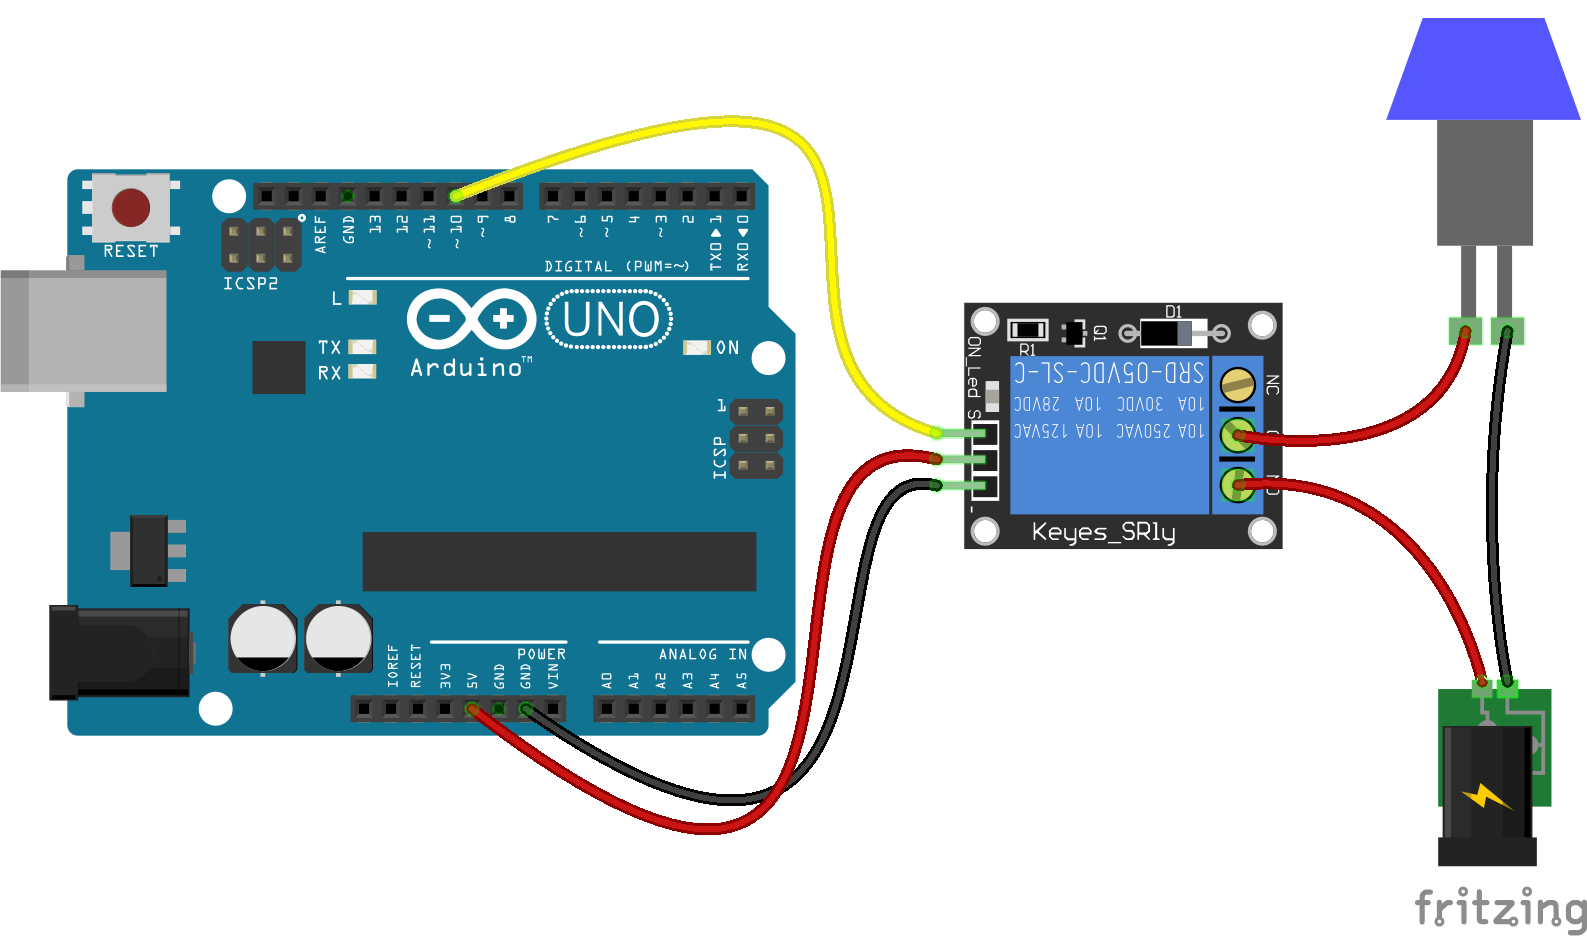 How to flash attiny through arduino